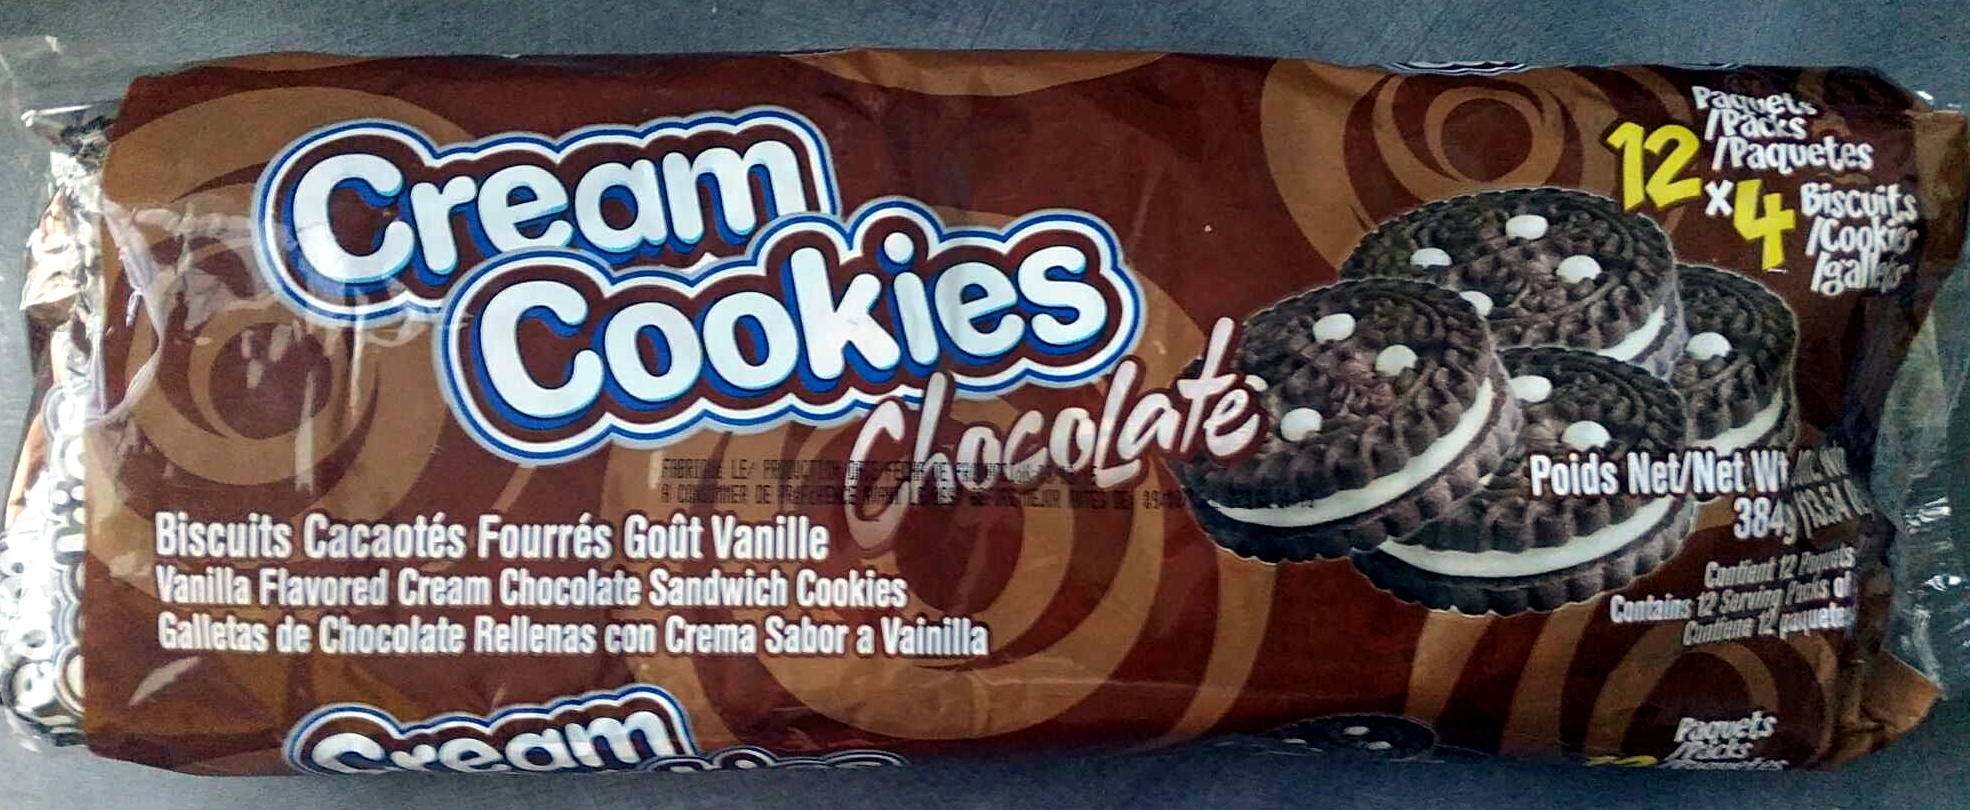 Cream Cookies Chocolate - Product - fr